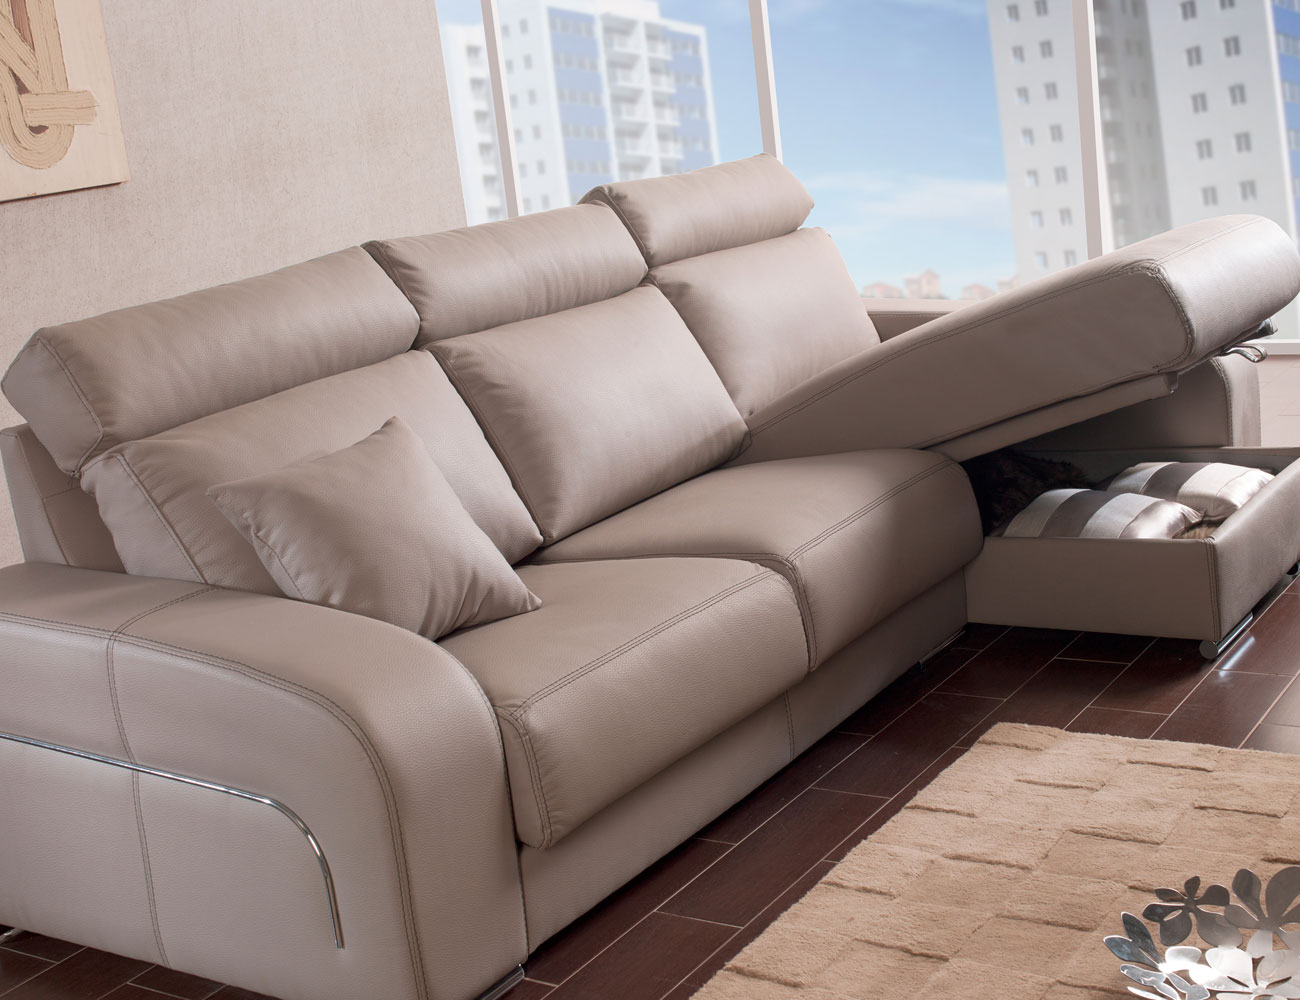 Sofa chaiselongue moderno pared cero arcon30